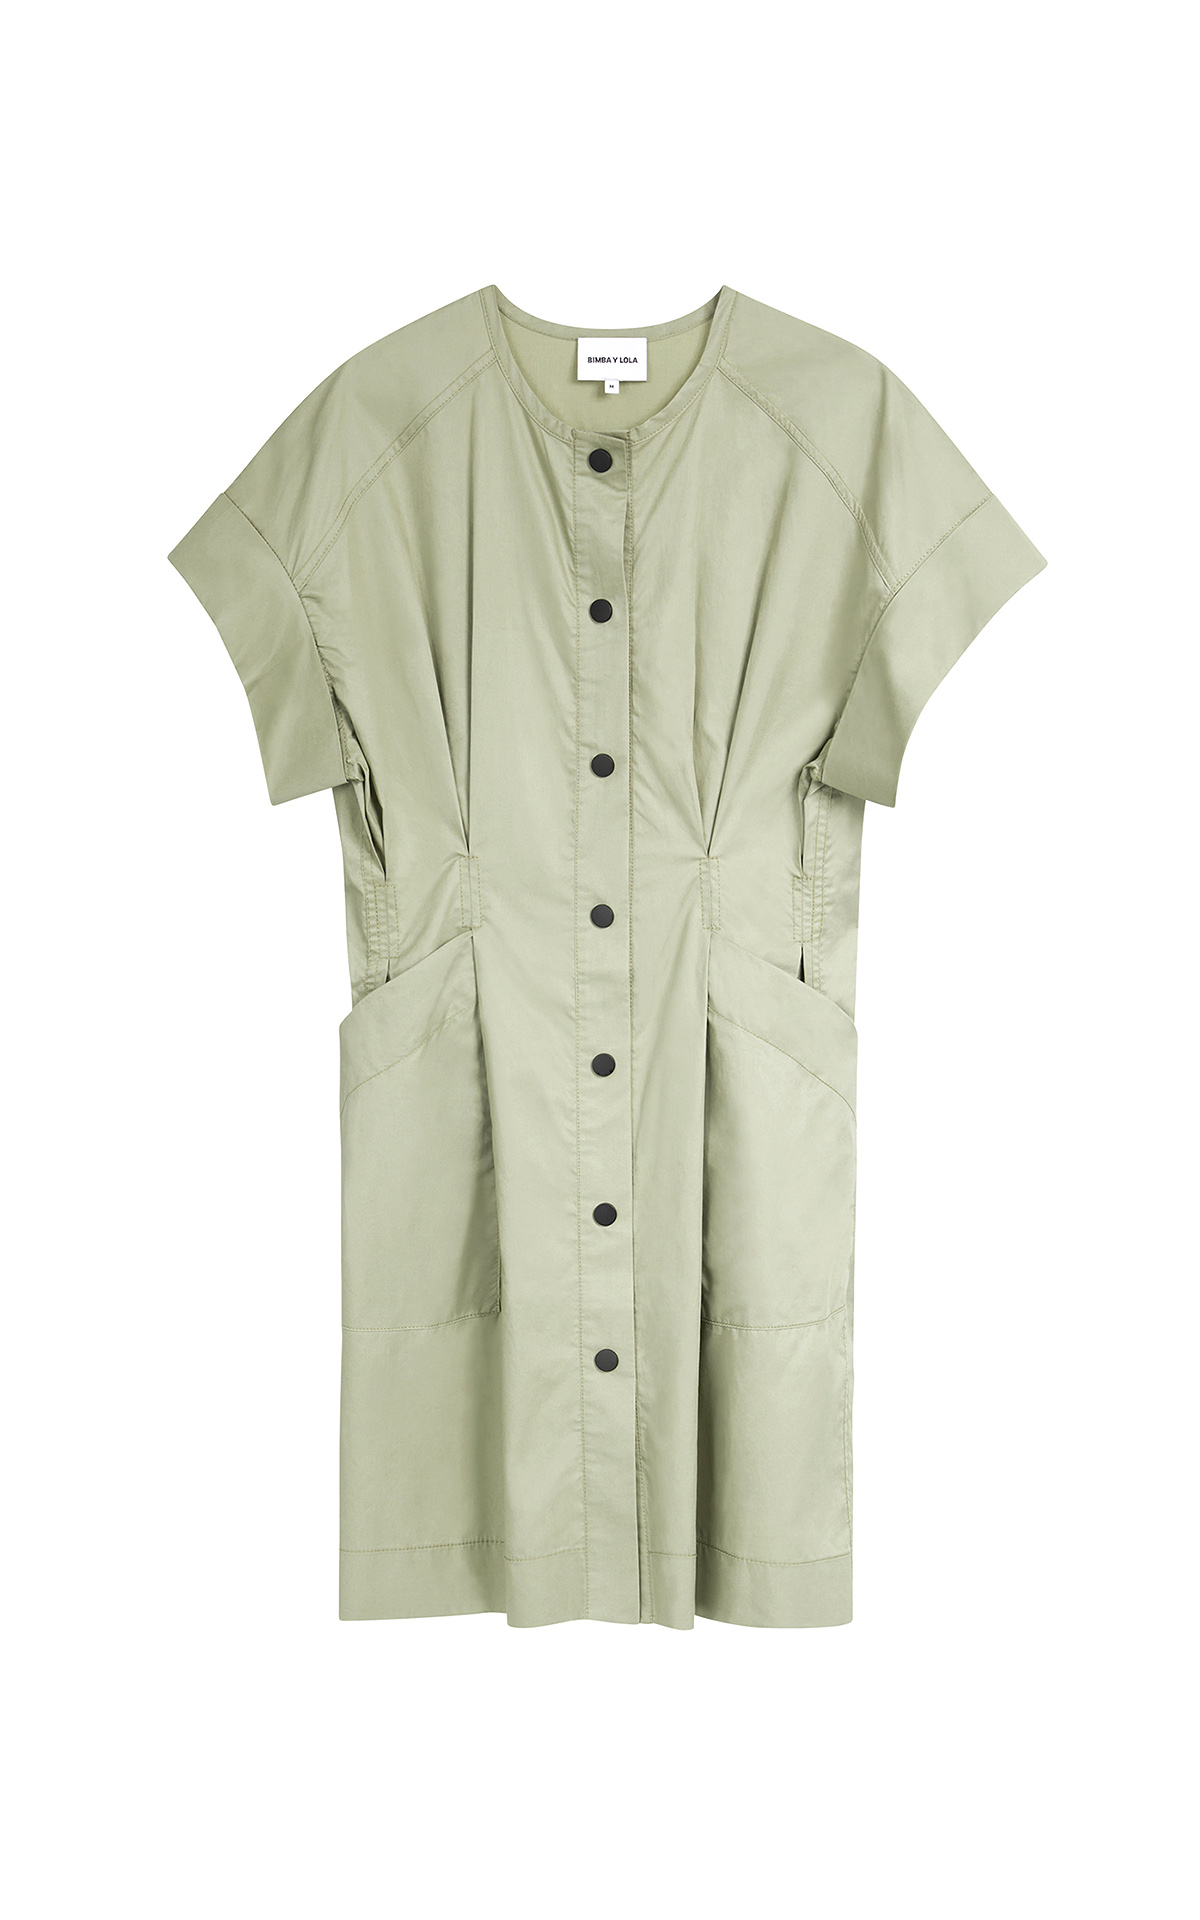 Khaki short dress Bimba y Lola